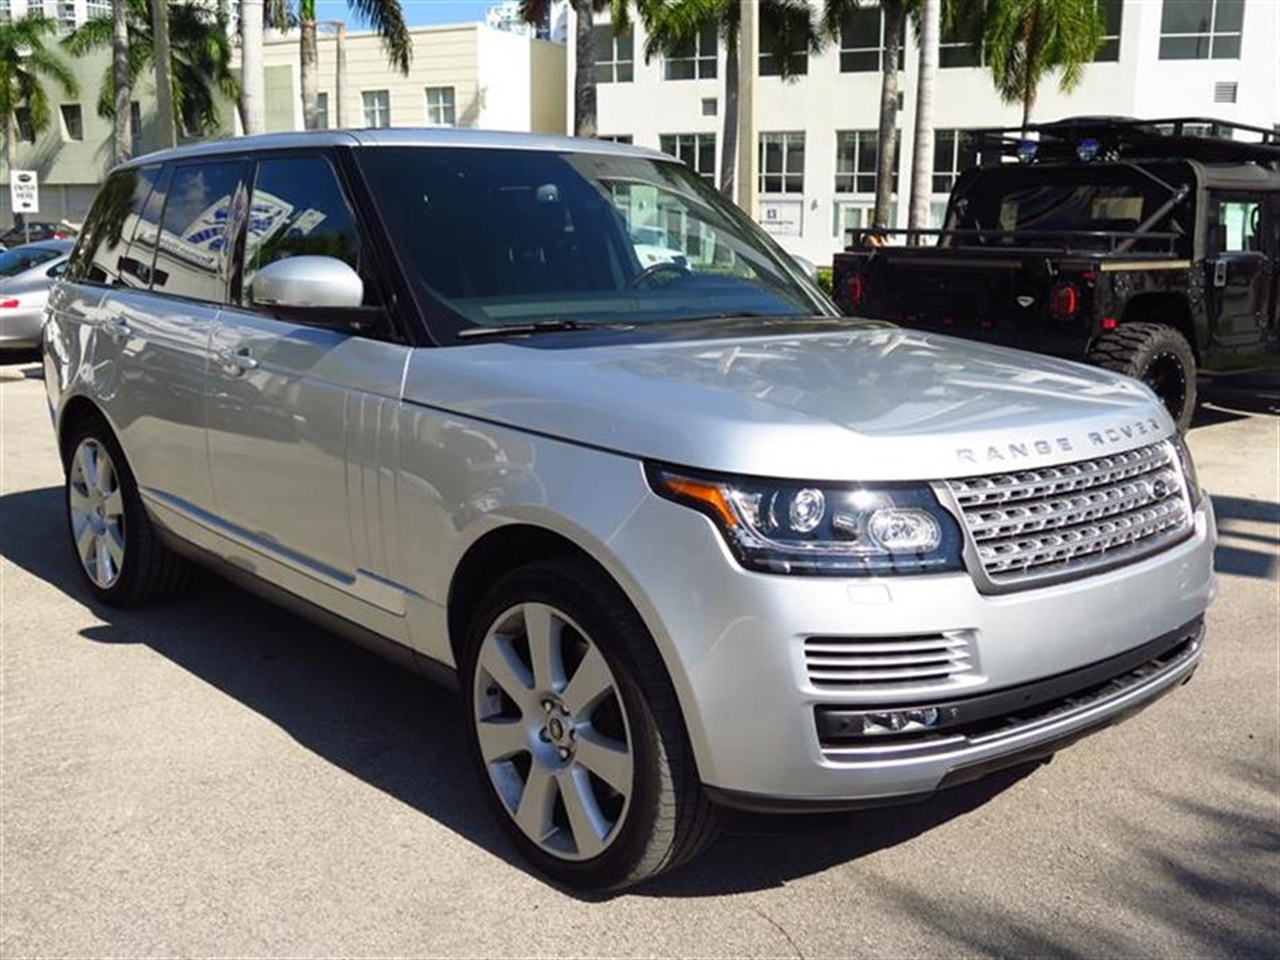 2013 LAND ROVER RANGE ROVER 4WD 4dr SC 17773 miles 123 thin film transister TFT instrument scre